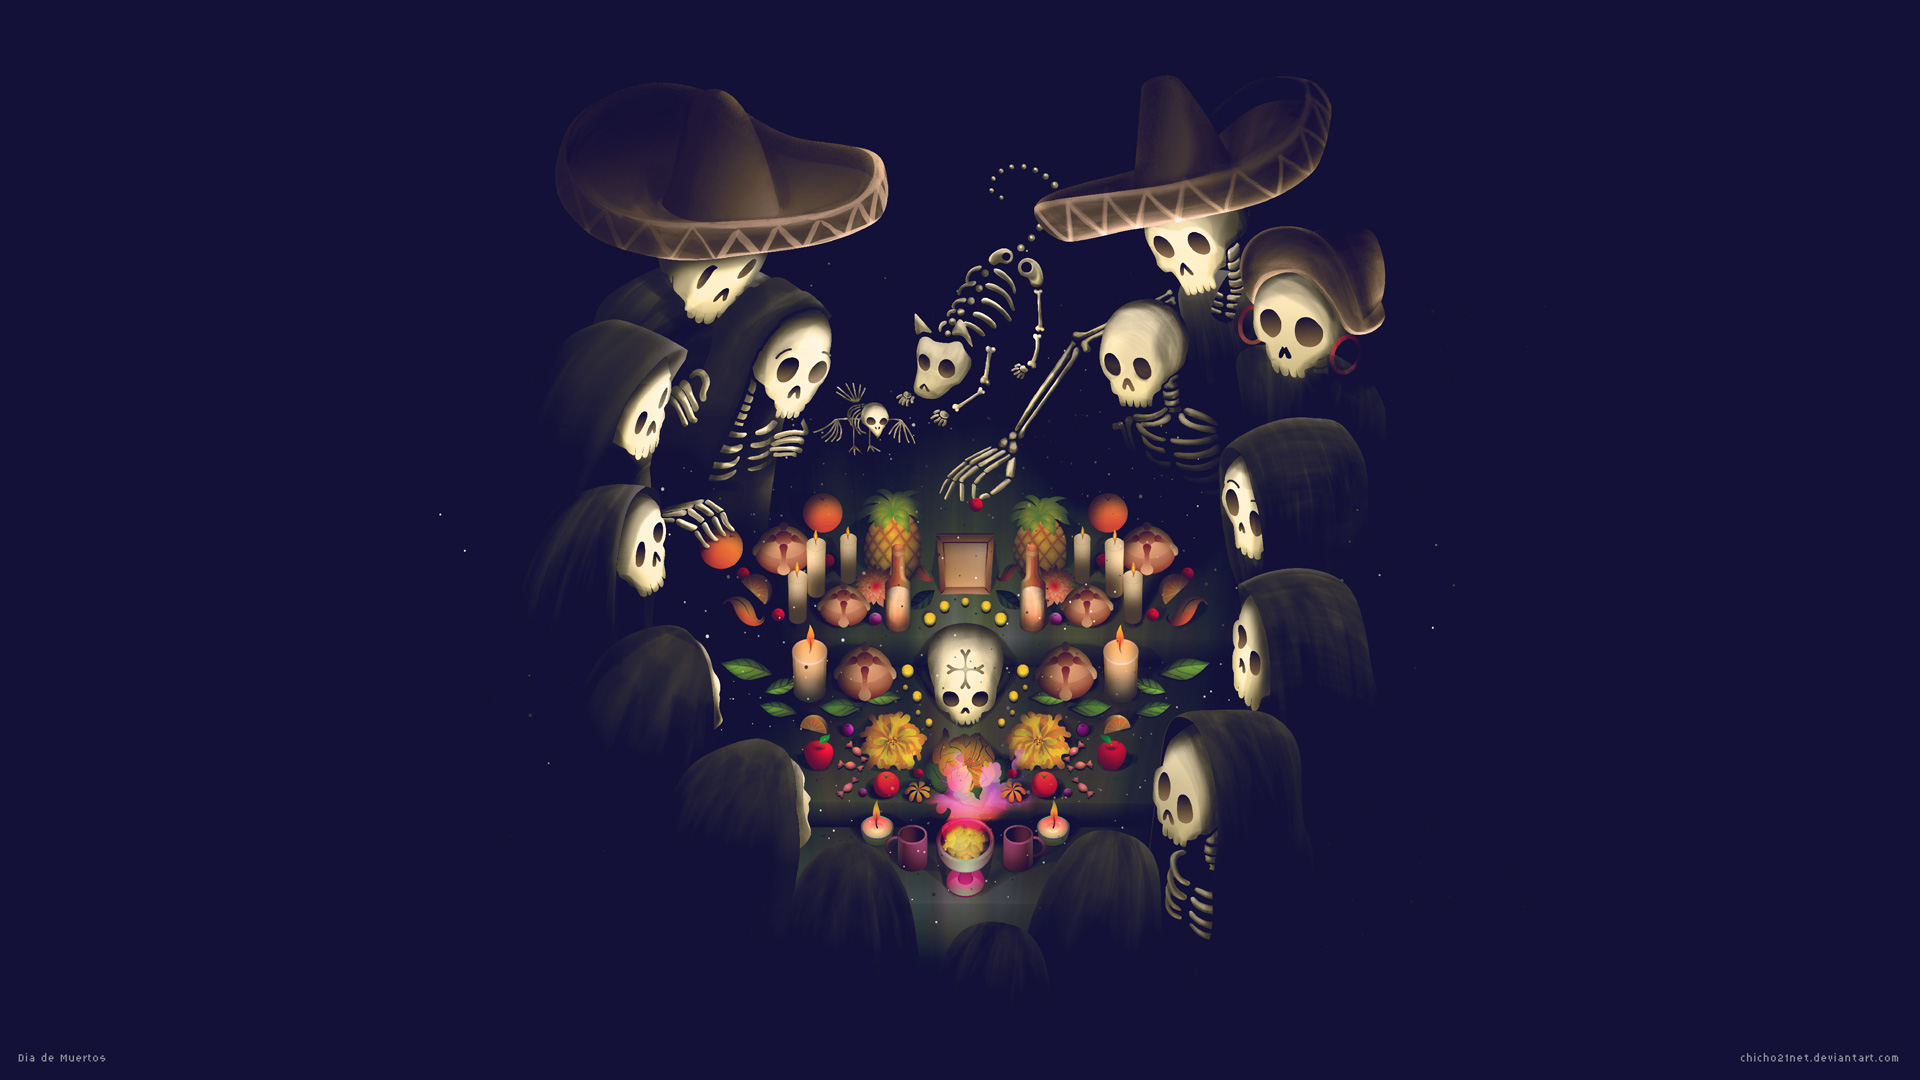 Dia de Muertos by chicho21net on DeviantArt